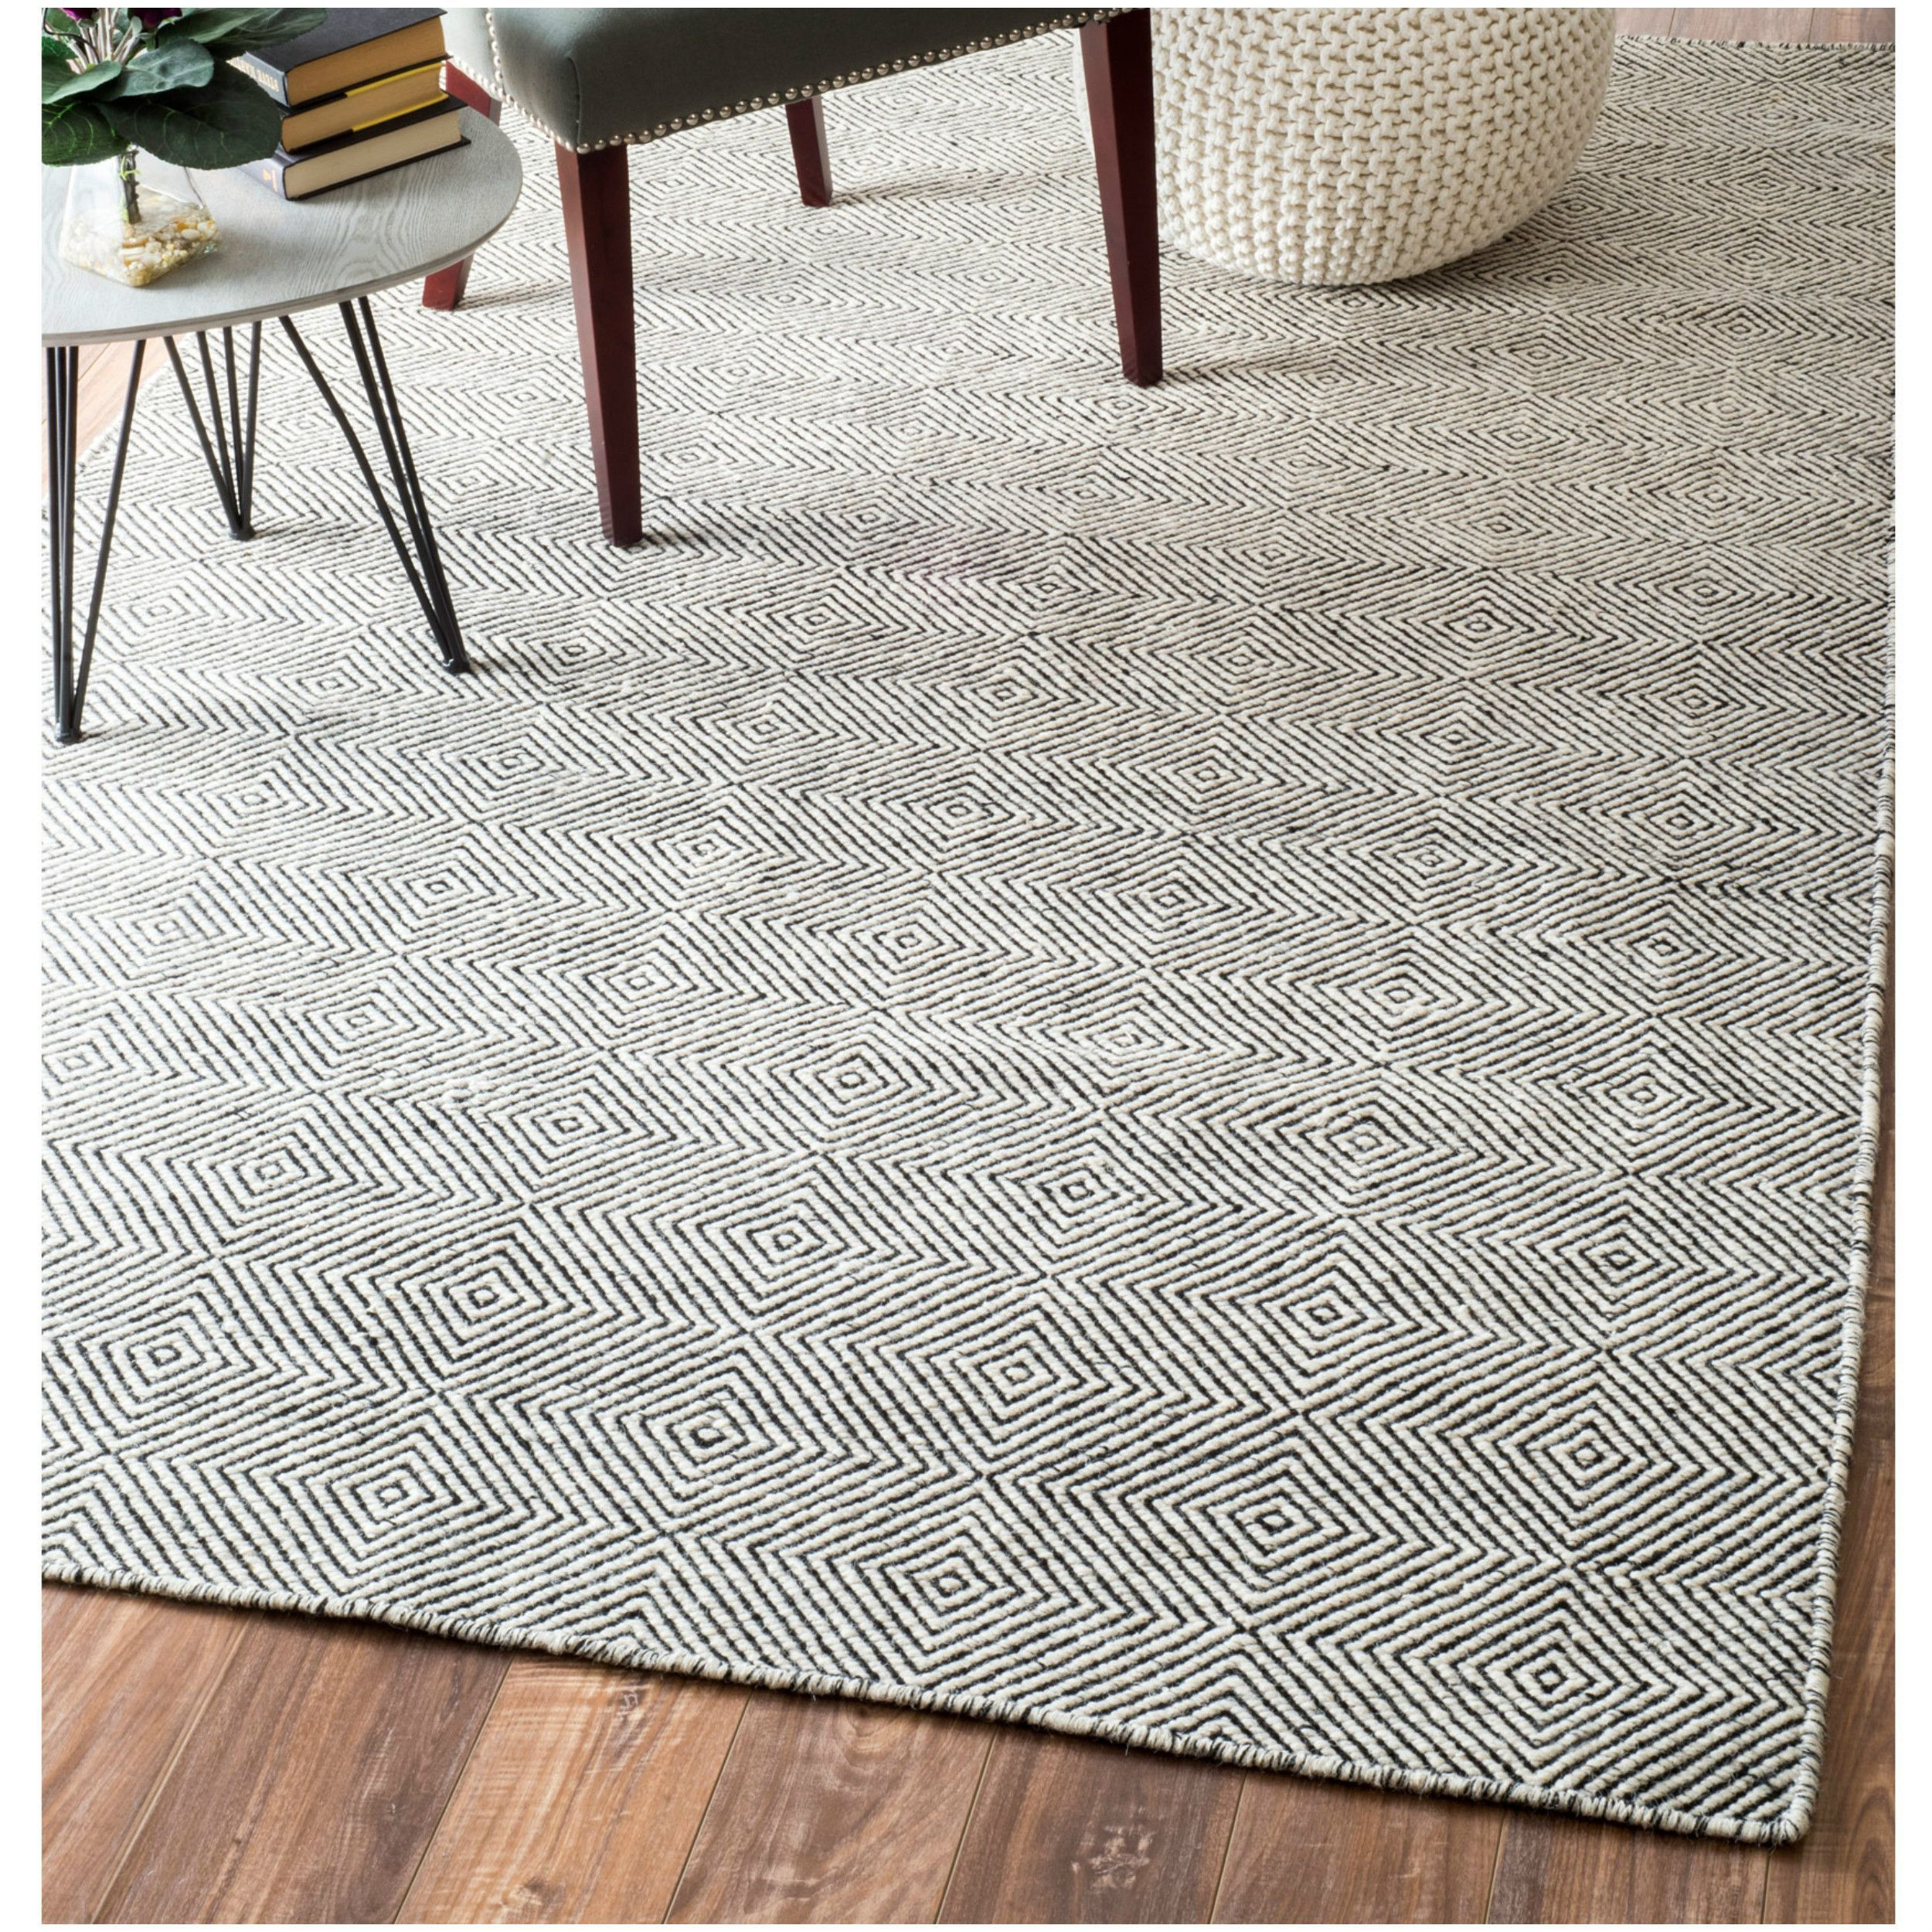 x handmade today shipping rugs free fancy trellis modern nuloom overstock garden wool home product rug